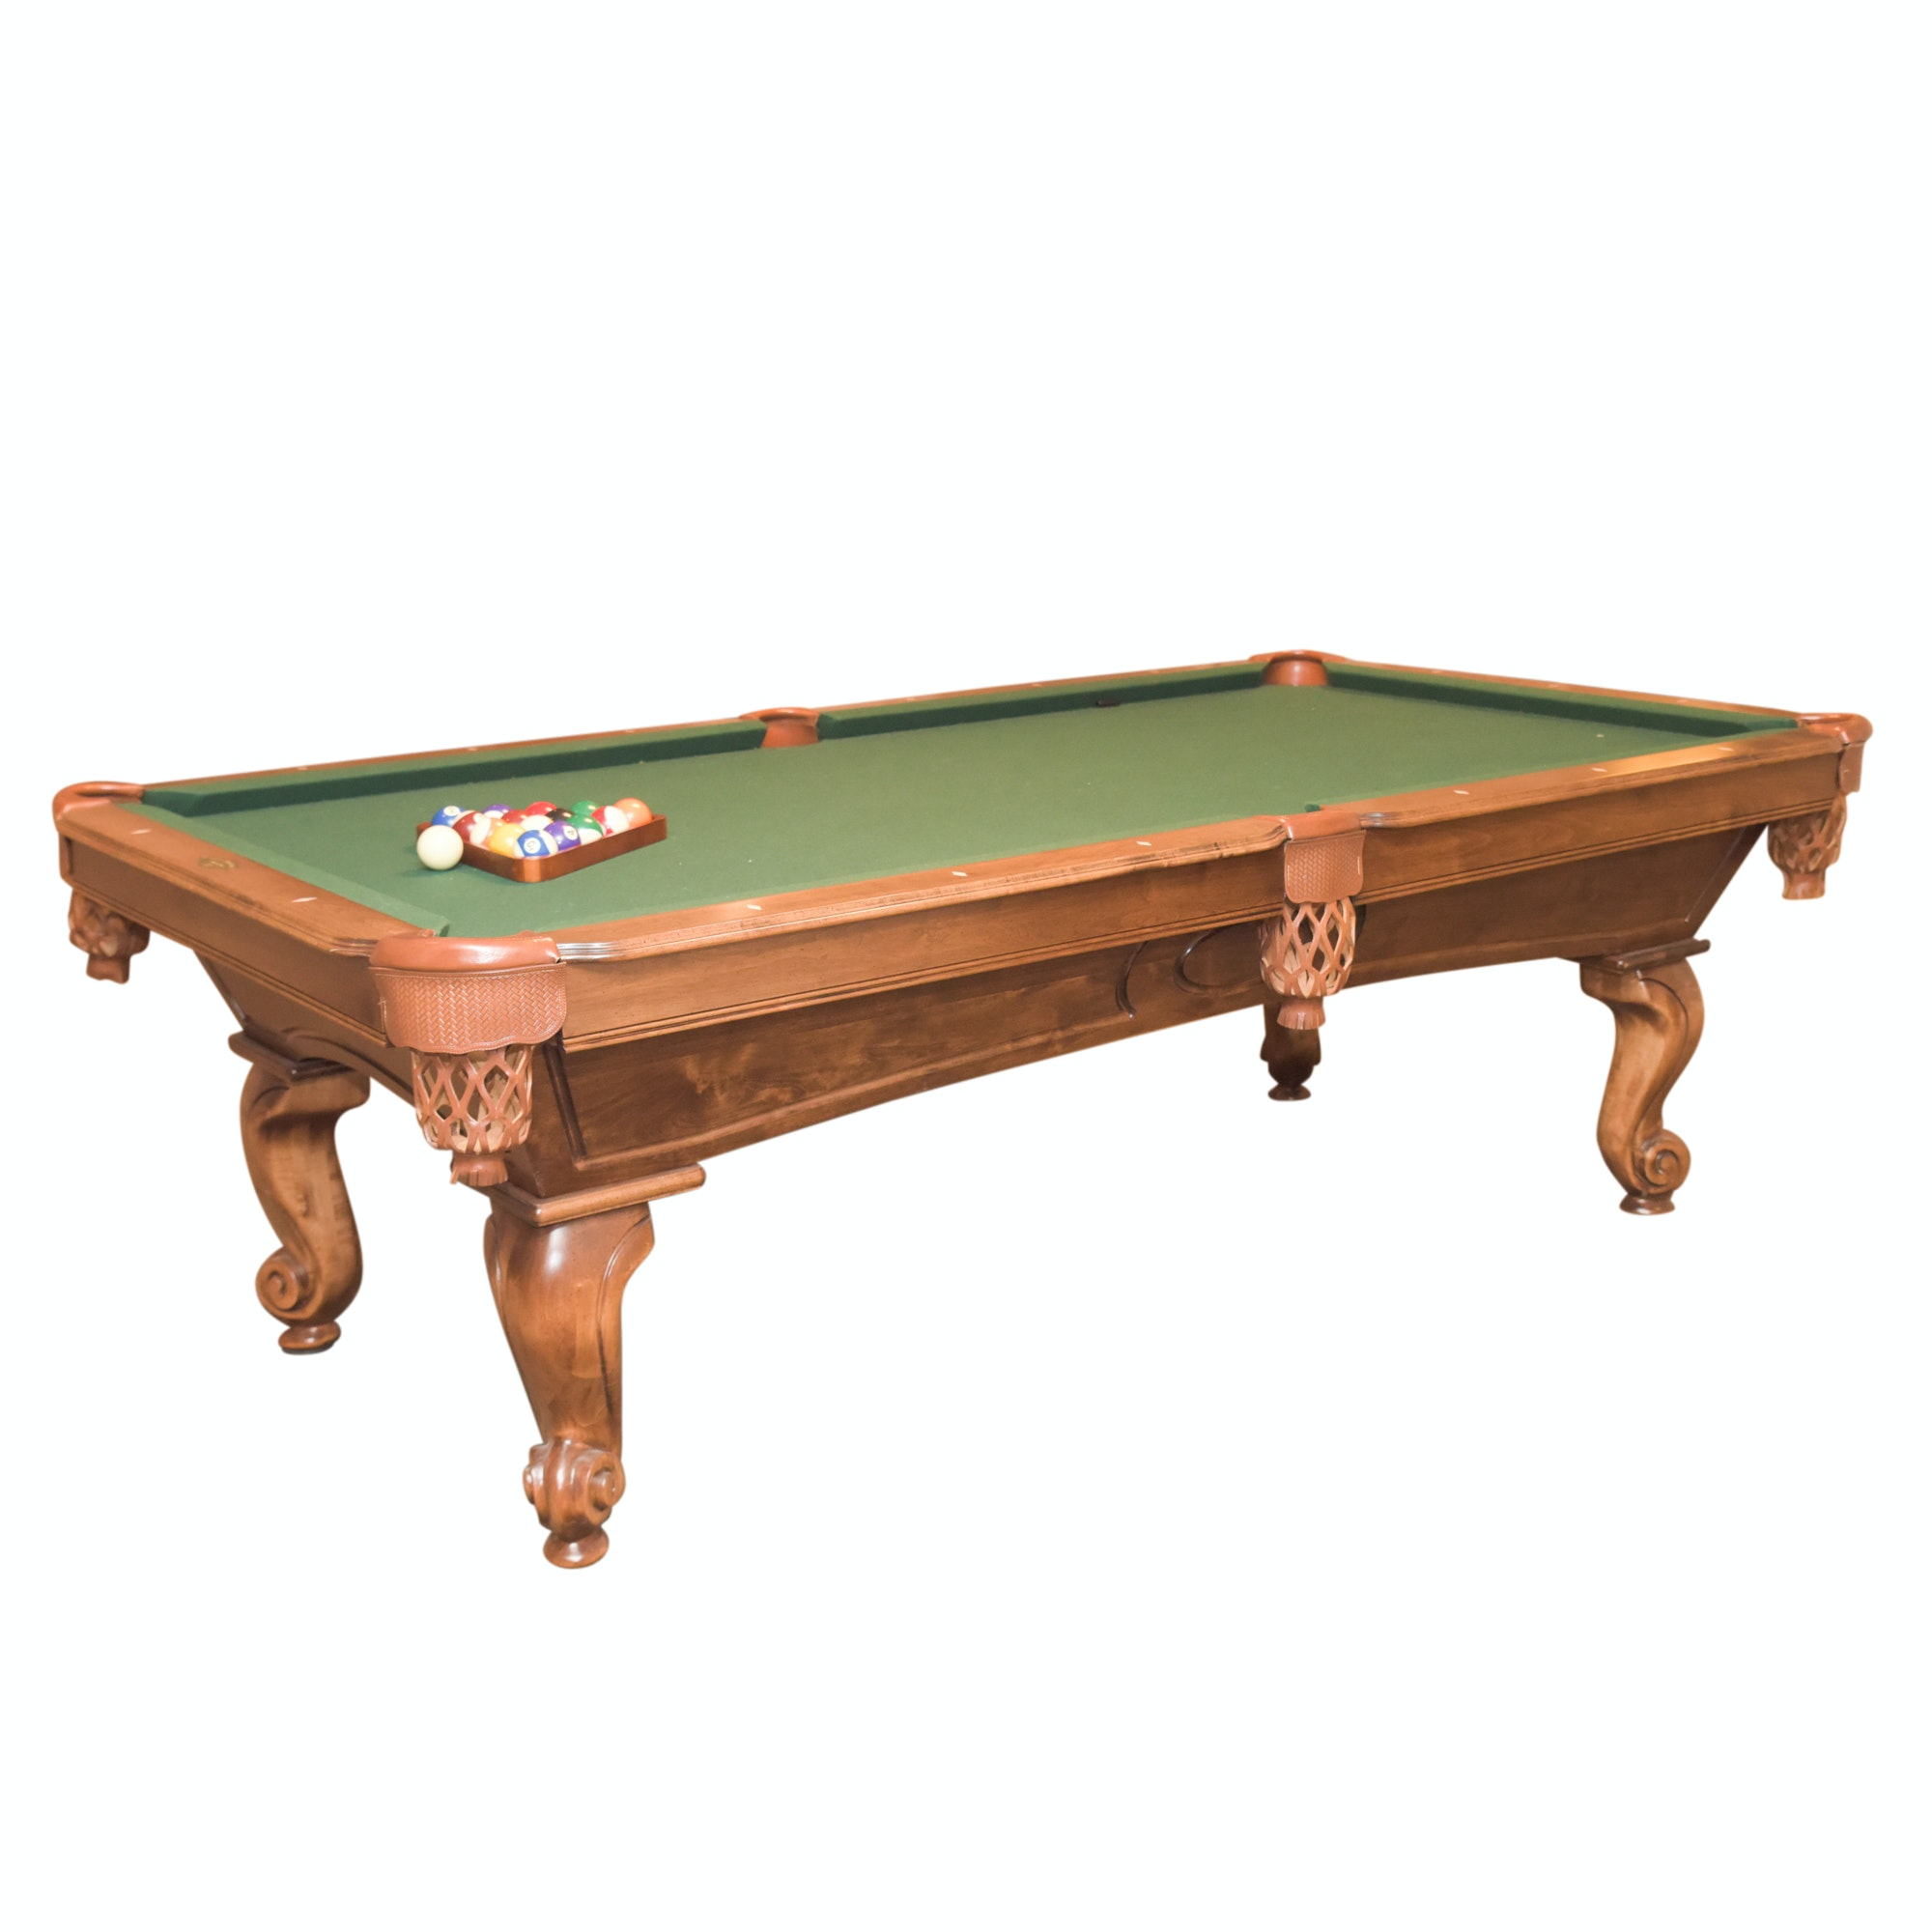 ProLine Billiards Table with Cues, Wall Rack, and Accessories